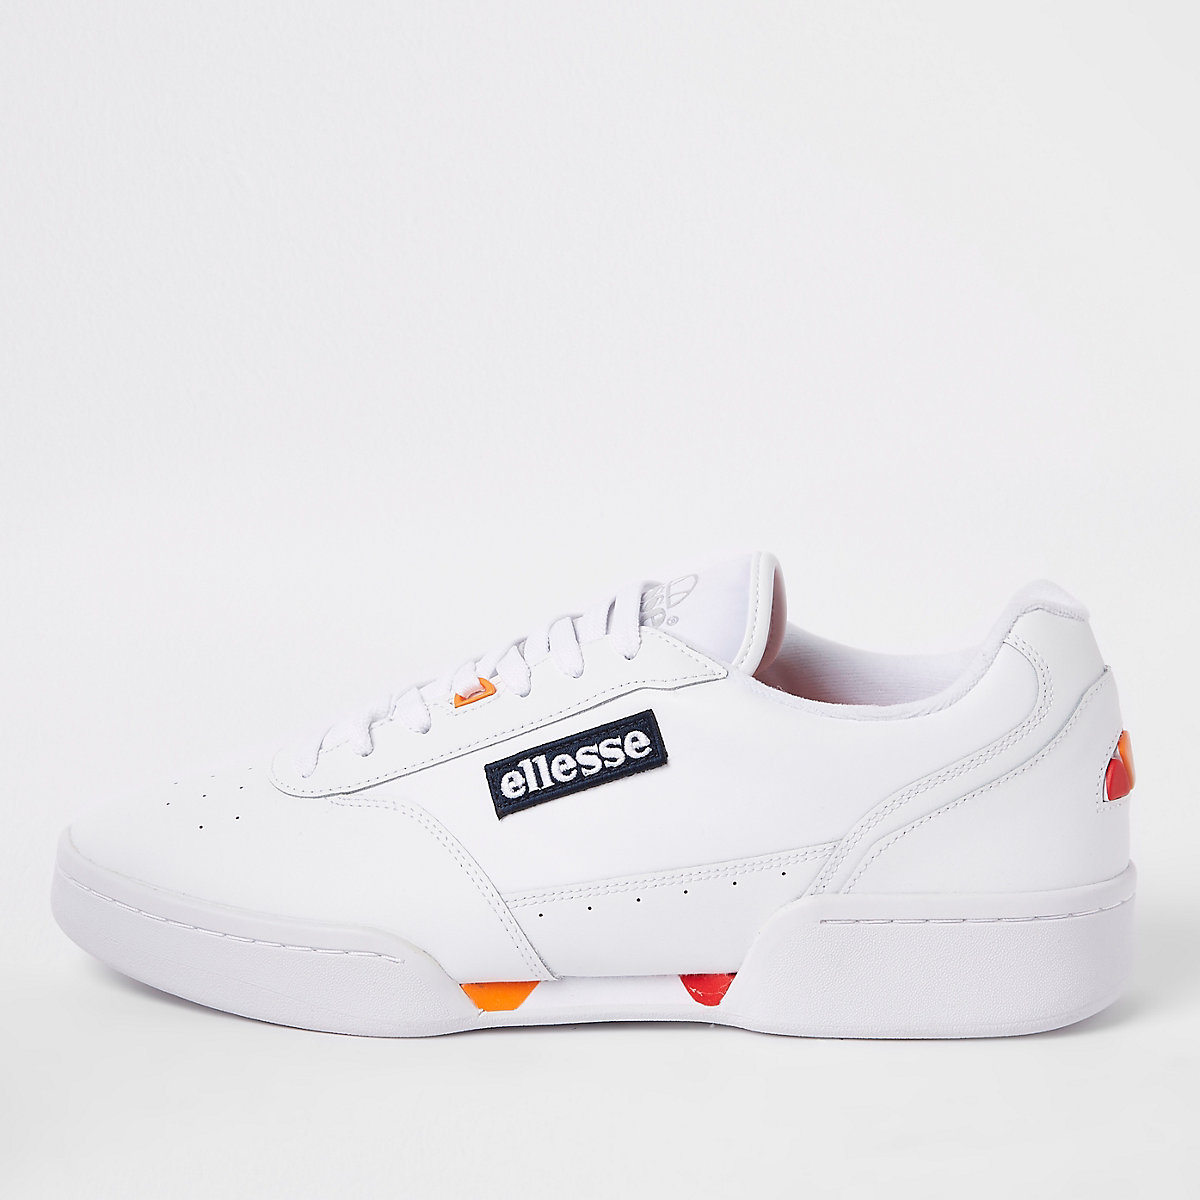 Ellesse white Piacentino leather trainers